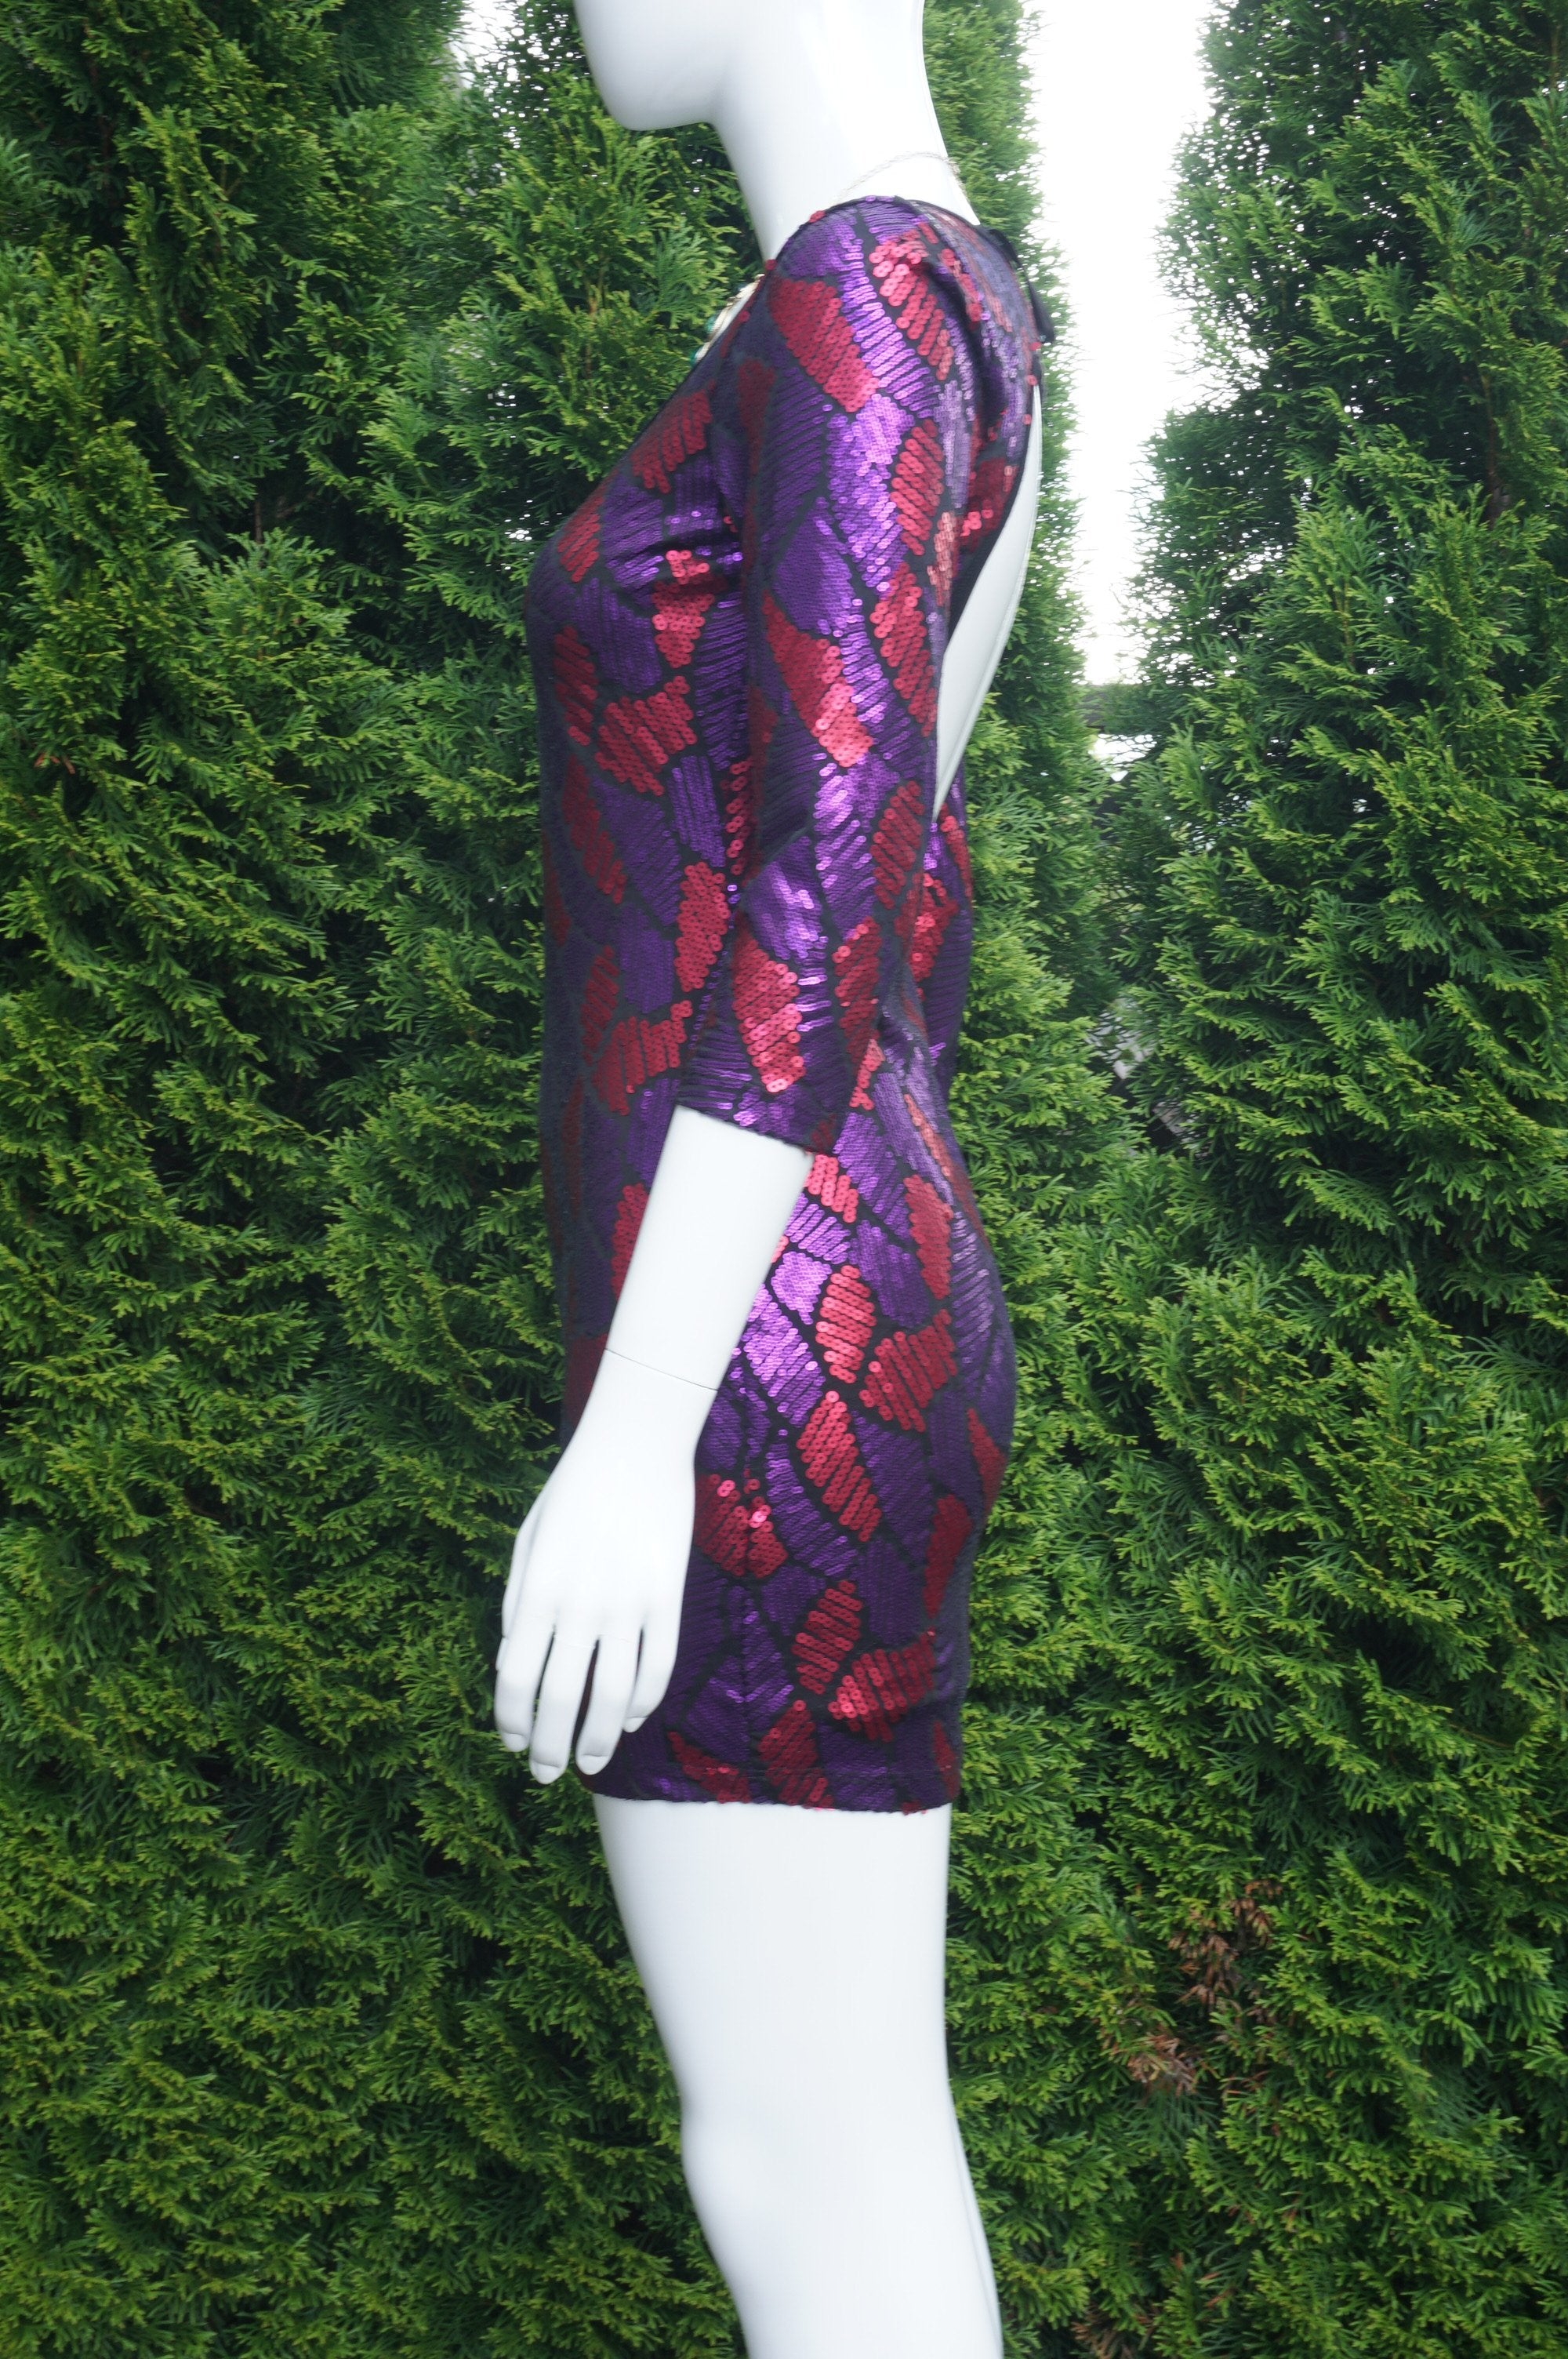 Marciano Open Back Sequin Dress, Measurements when relaxed: Shoulder to Shoulder 14 inches, bust 32 inches, waist 27 inches, hip 34 inches. Dress is very stretchy. , Purple, Red, 90% Polyester 10% Spandex, women's Dresses & Rompers, women's Purple, Red Dresses & Rompers, Marciano women's Dresses & Rompers, Sequin dress, open back dress,